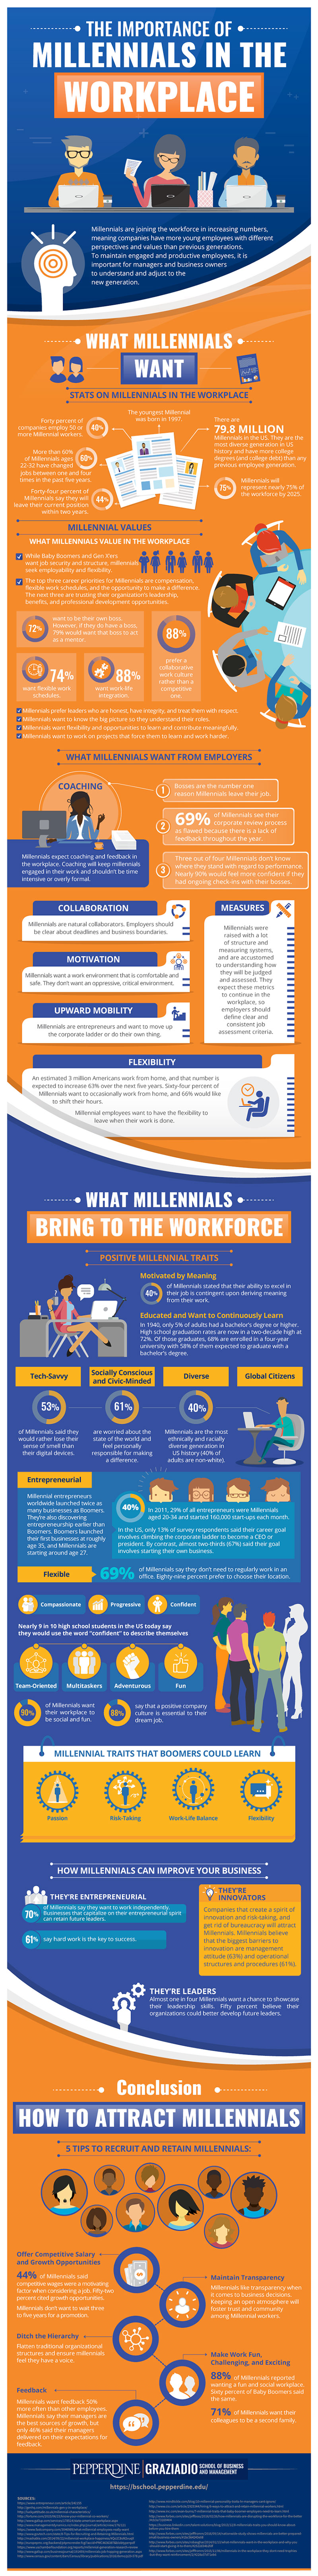 The Importance of Millennials in the Workplace